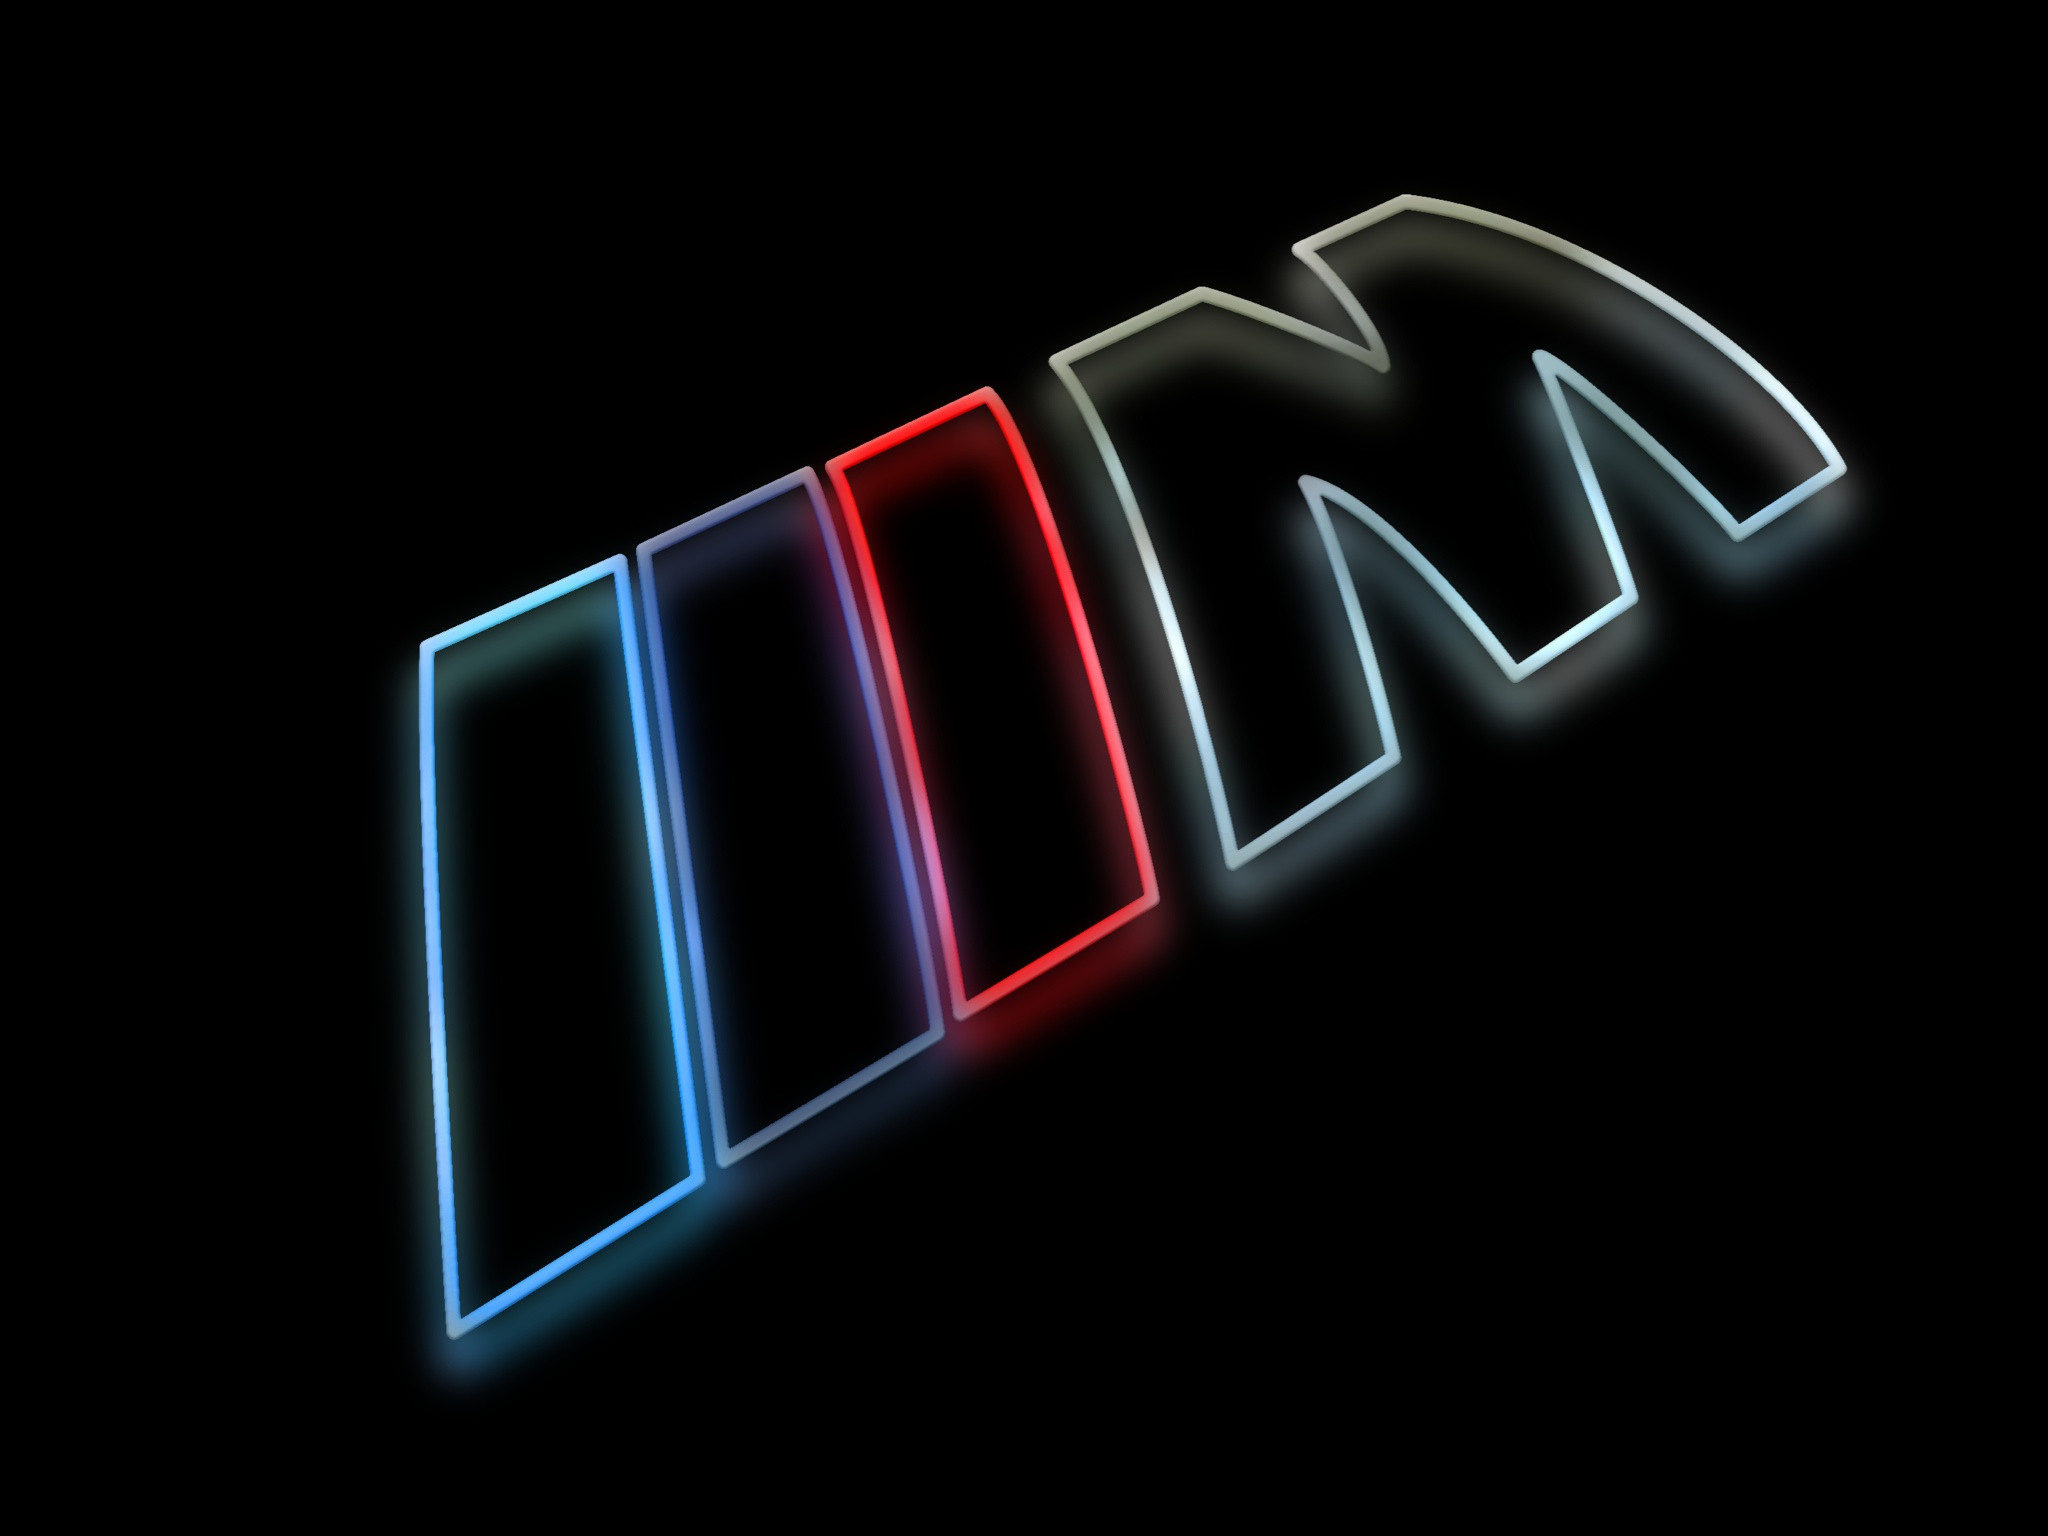 BMW M Logo as a colorful silhouette rendering with a glow against a shiny  black surface